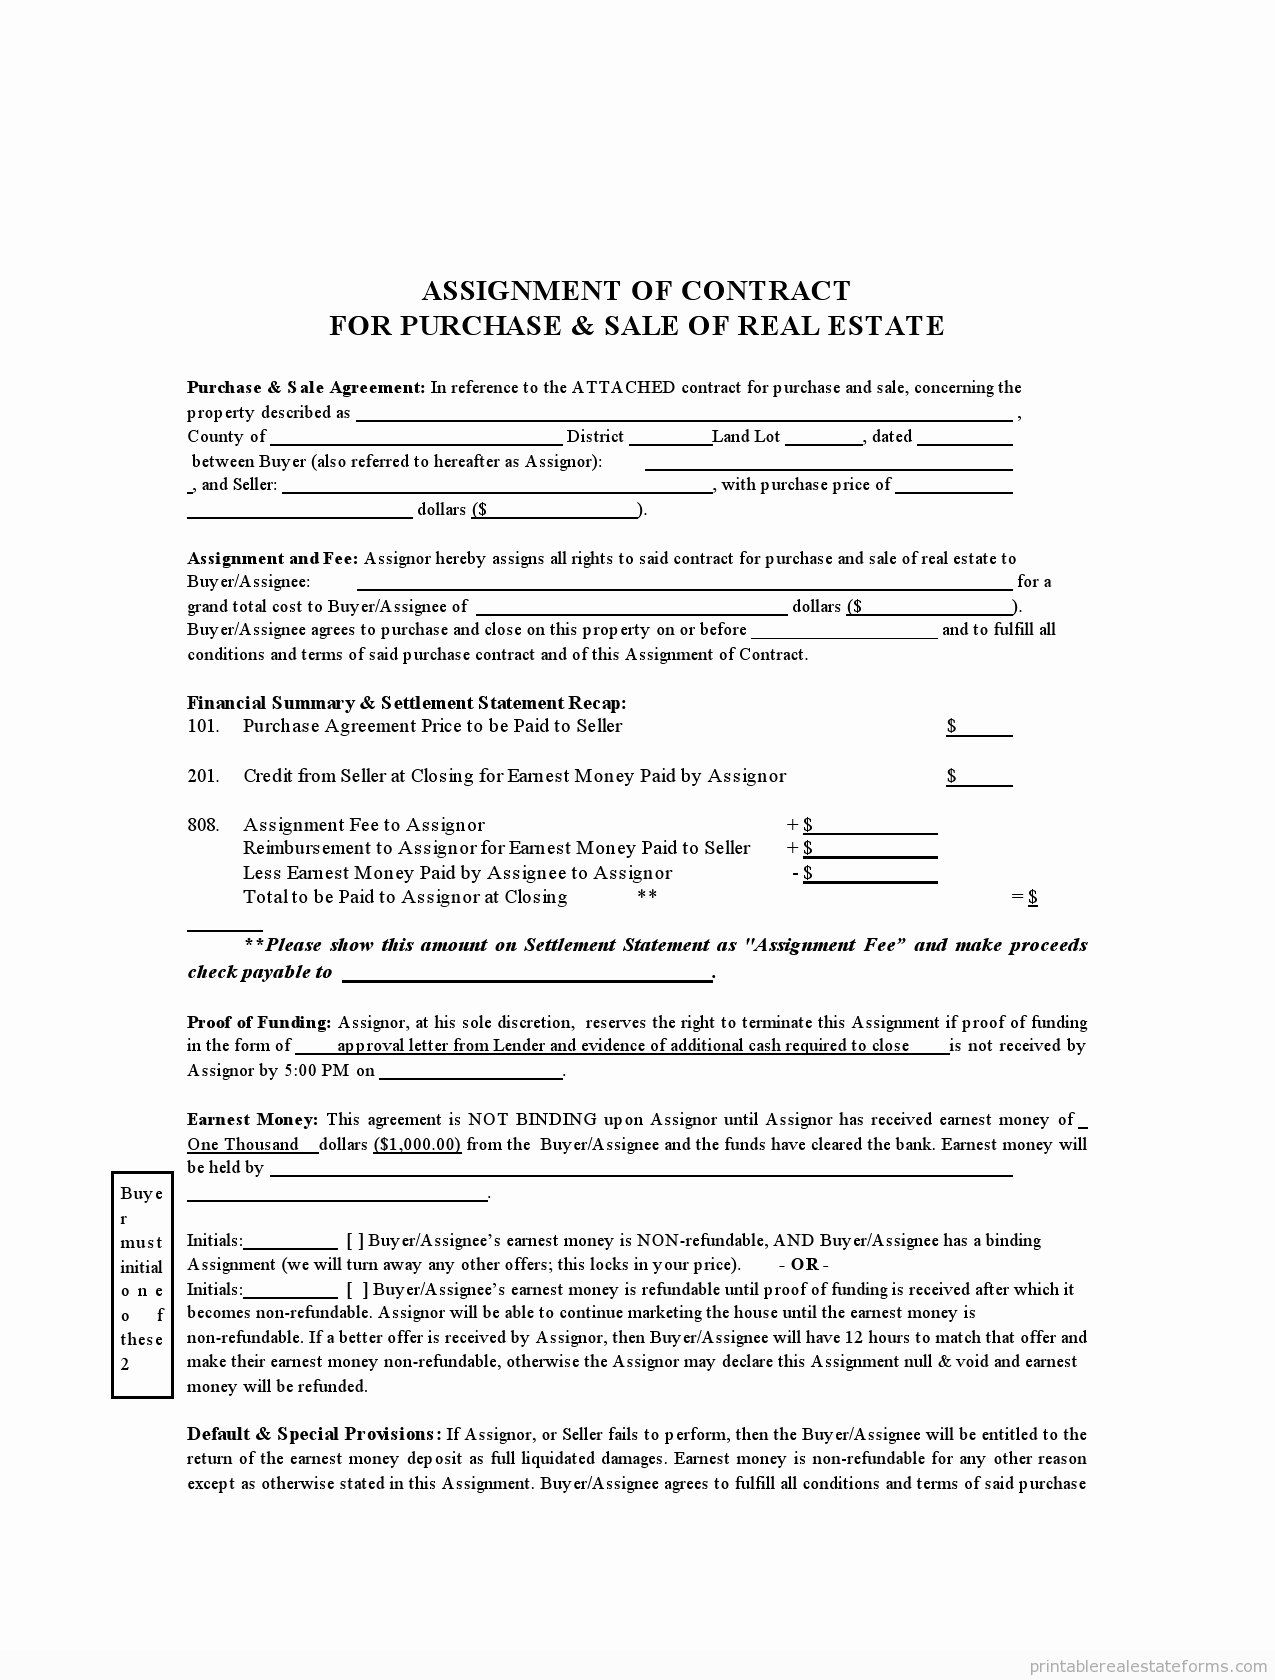 Free assignment Contract form Real Estate Sample